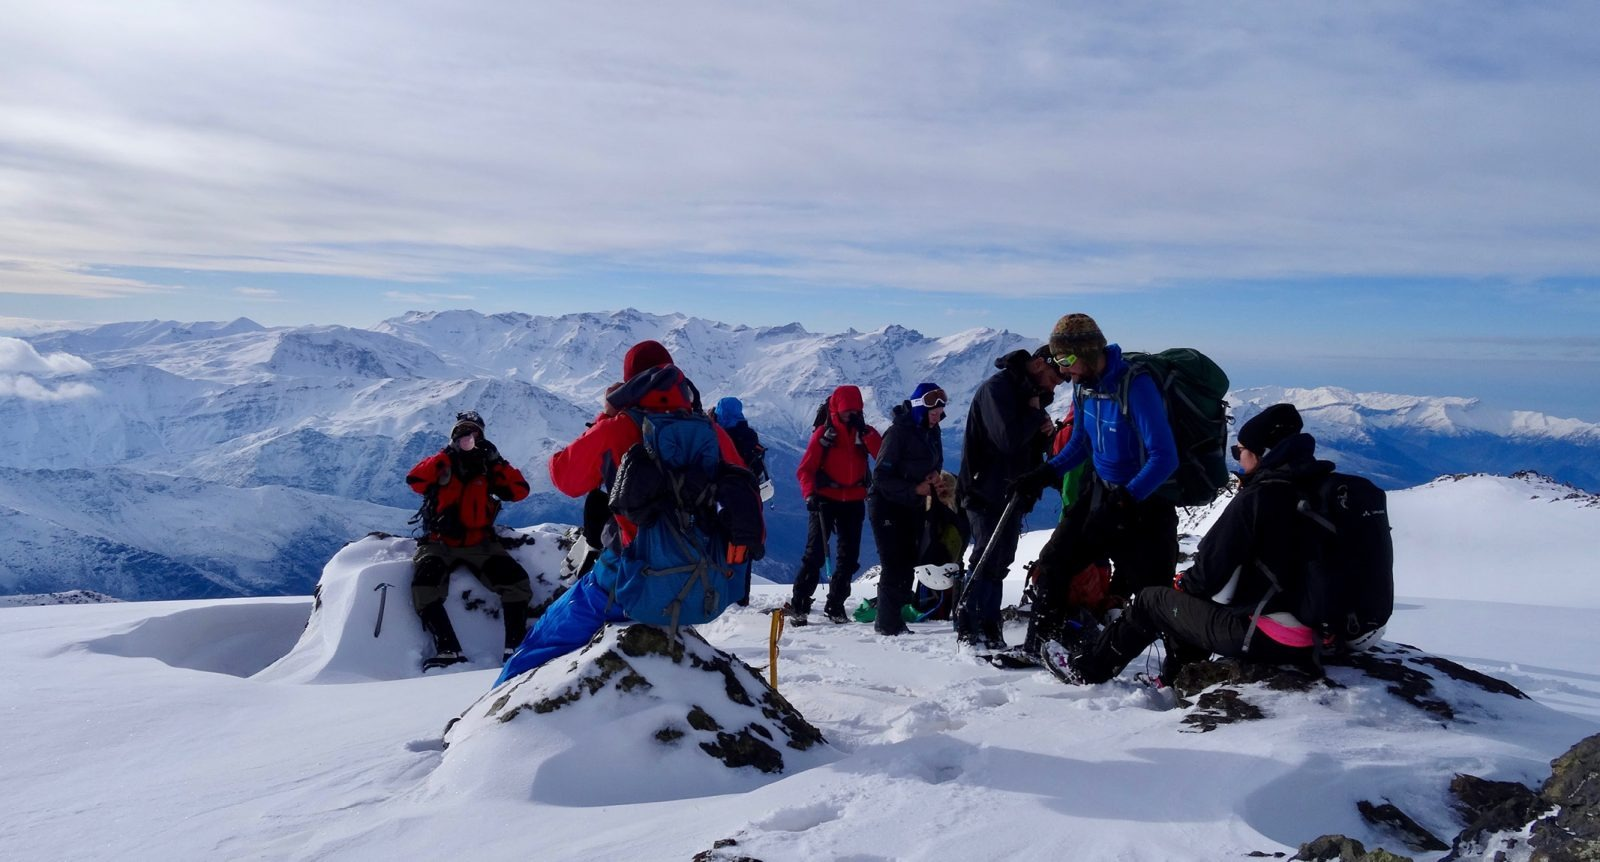 Summit success on the Iraq Zagros Mountains Expedition